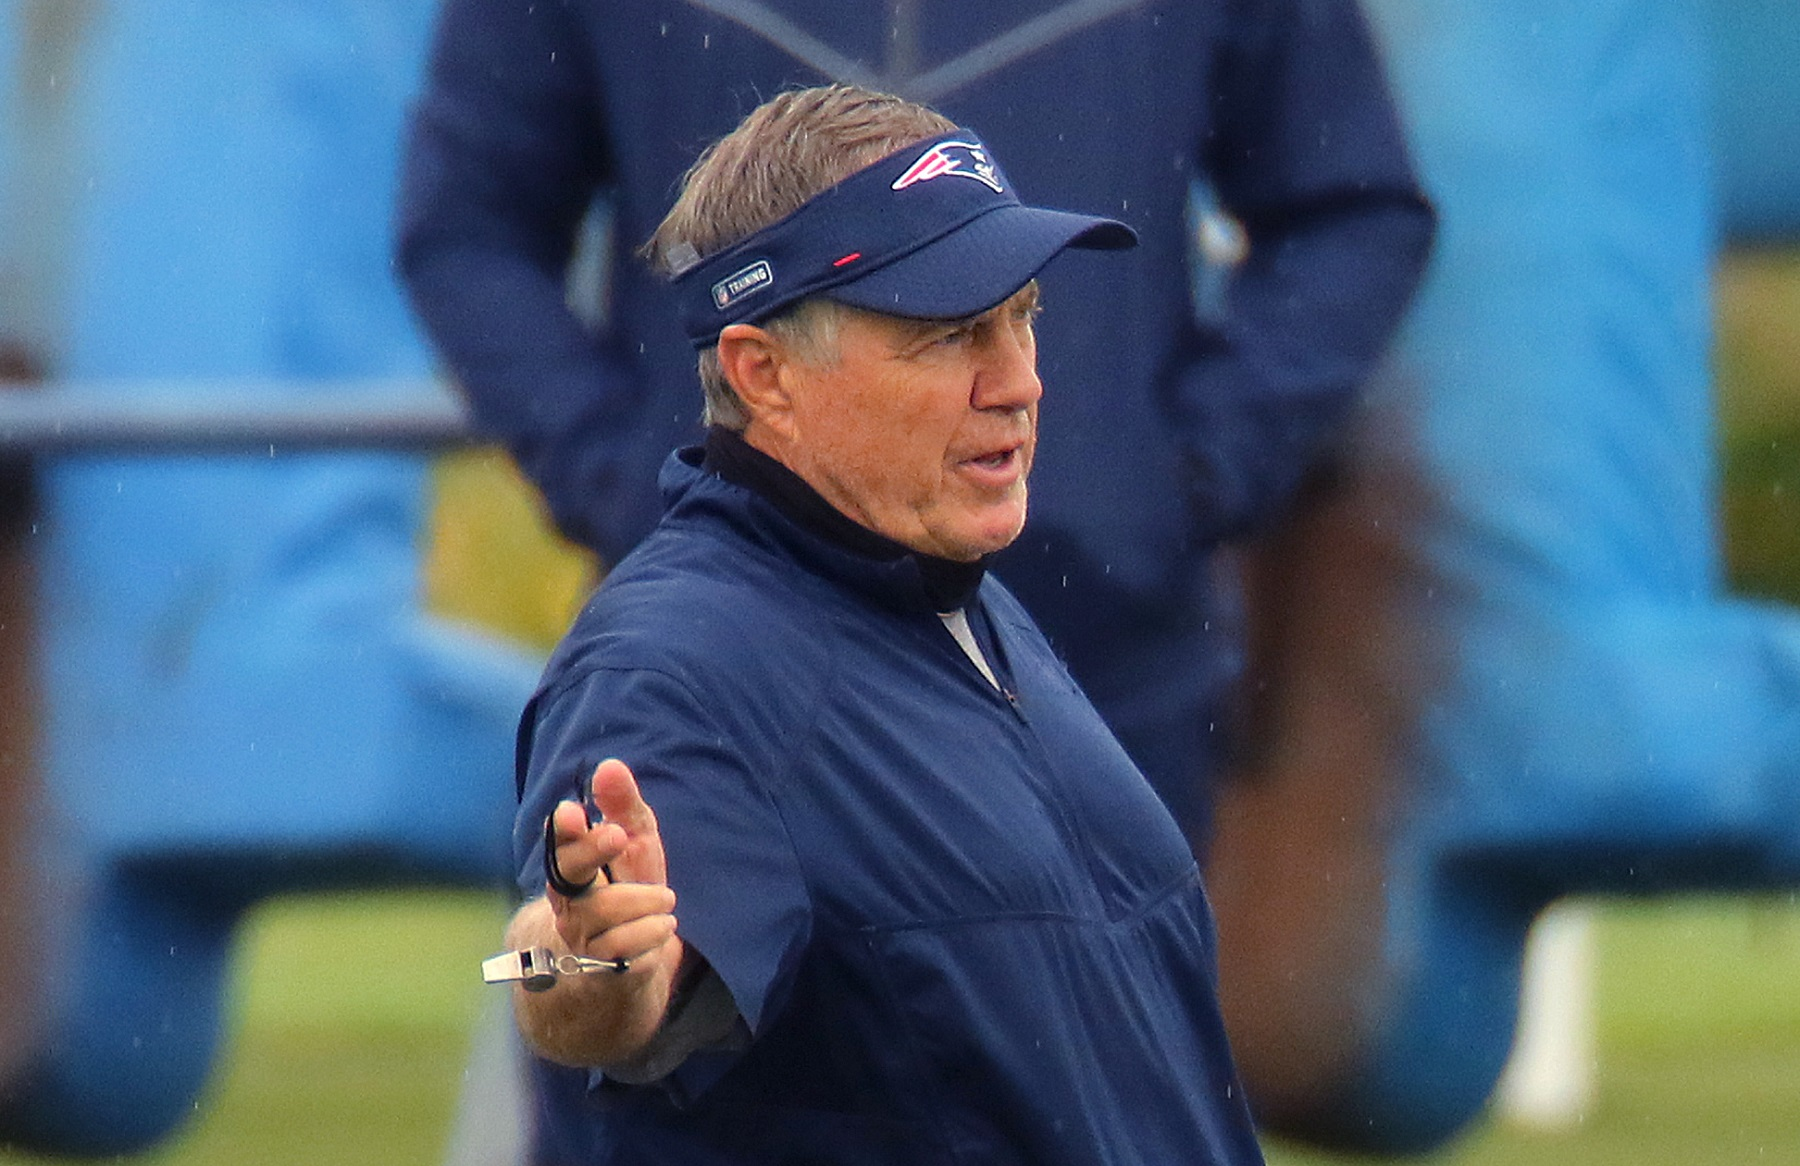 Bill Belichick, New England Patriots